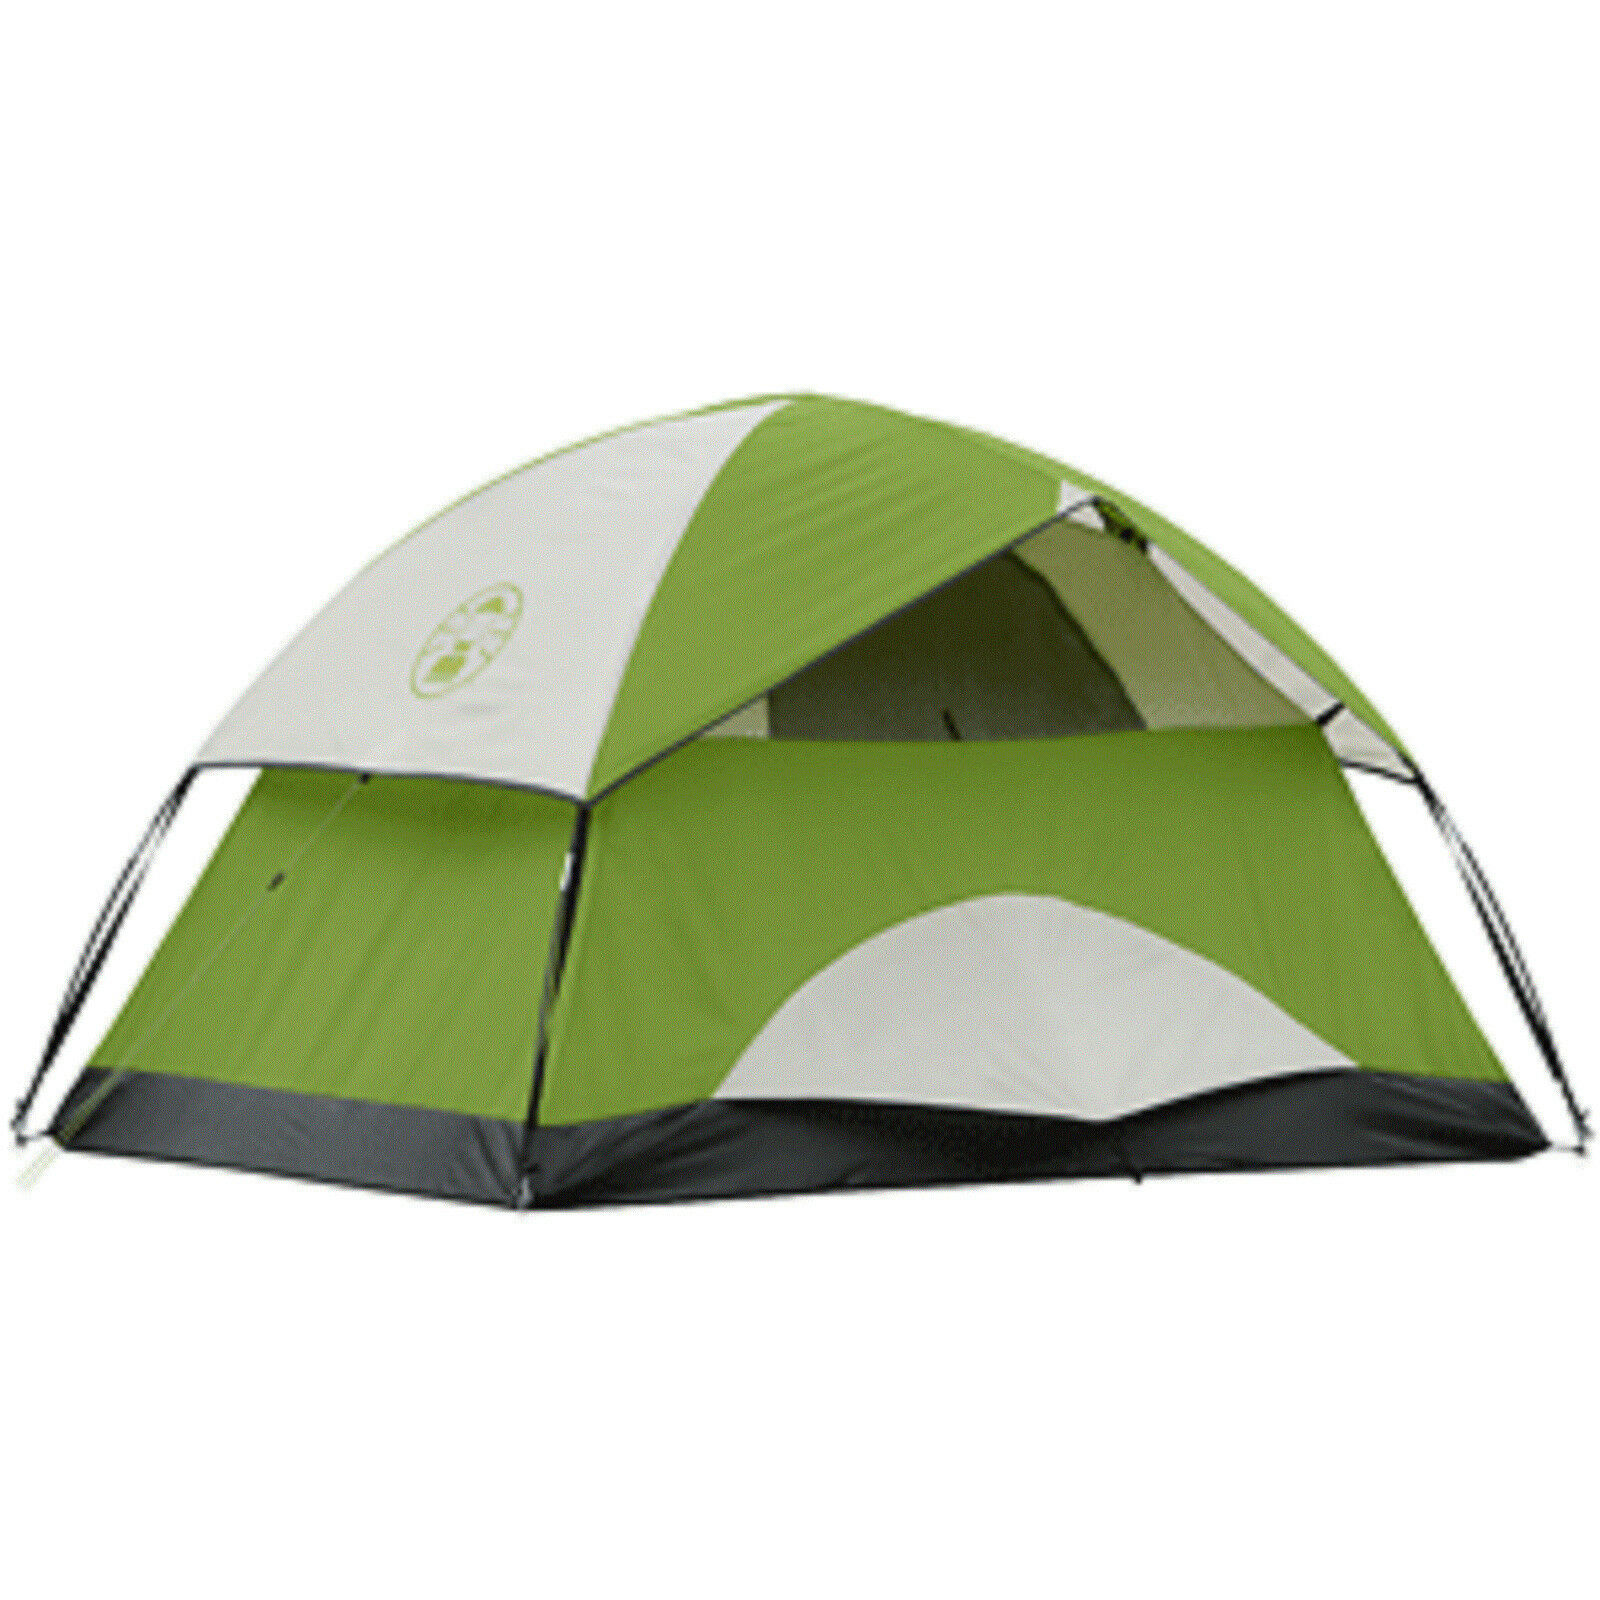 Coleman Sundome 2 Person Tent 7 X 5 X 48, w/Weathertec Easy Set Up Electric Port